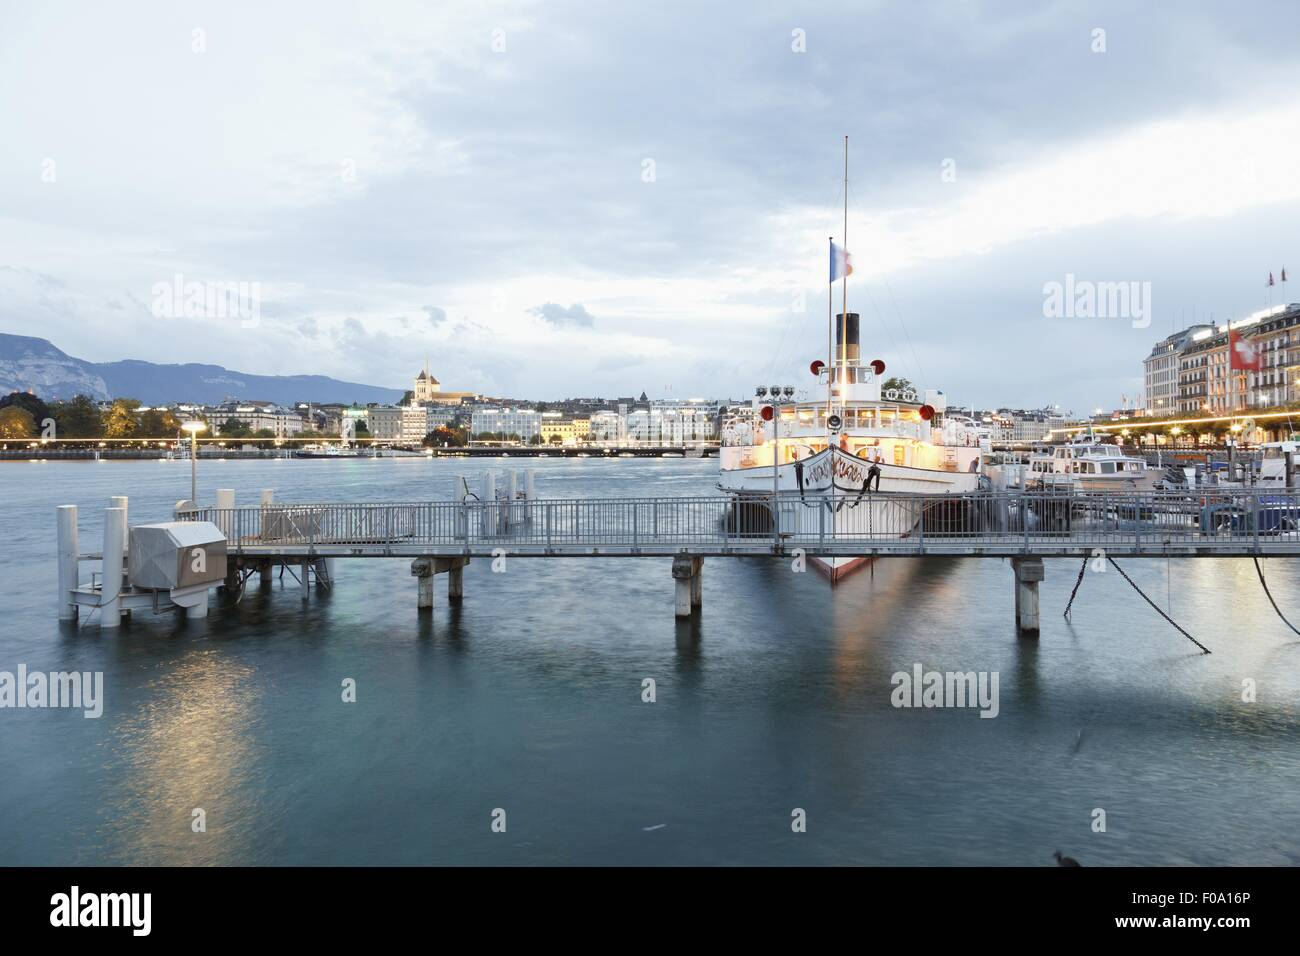 Port with sail boat, on Lake Geneva, Switzerland - Stock Image